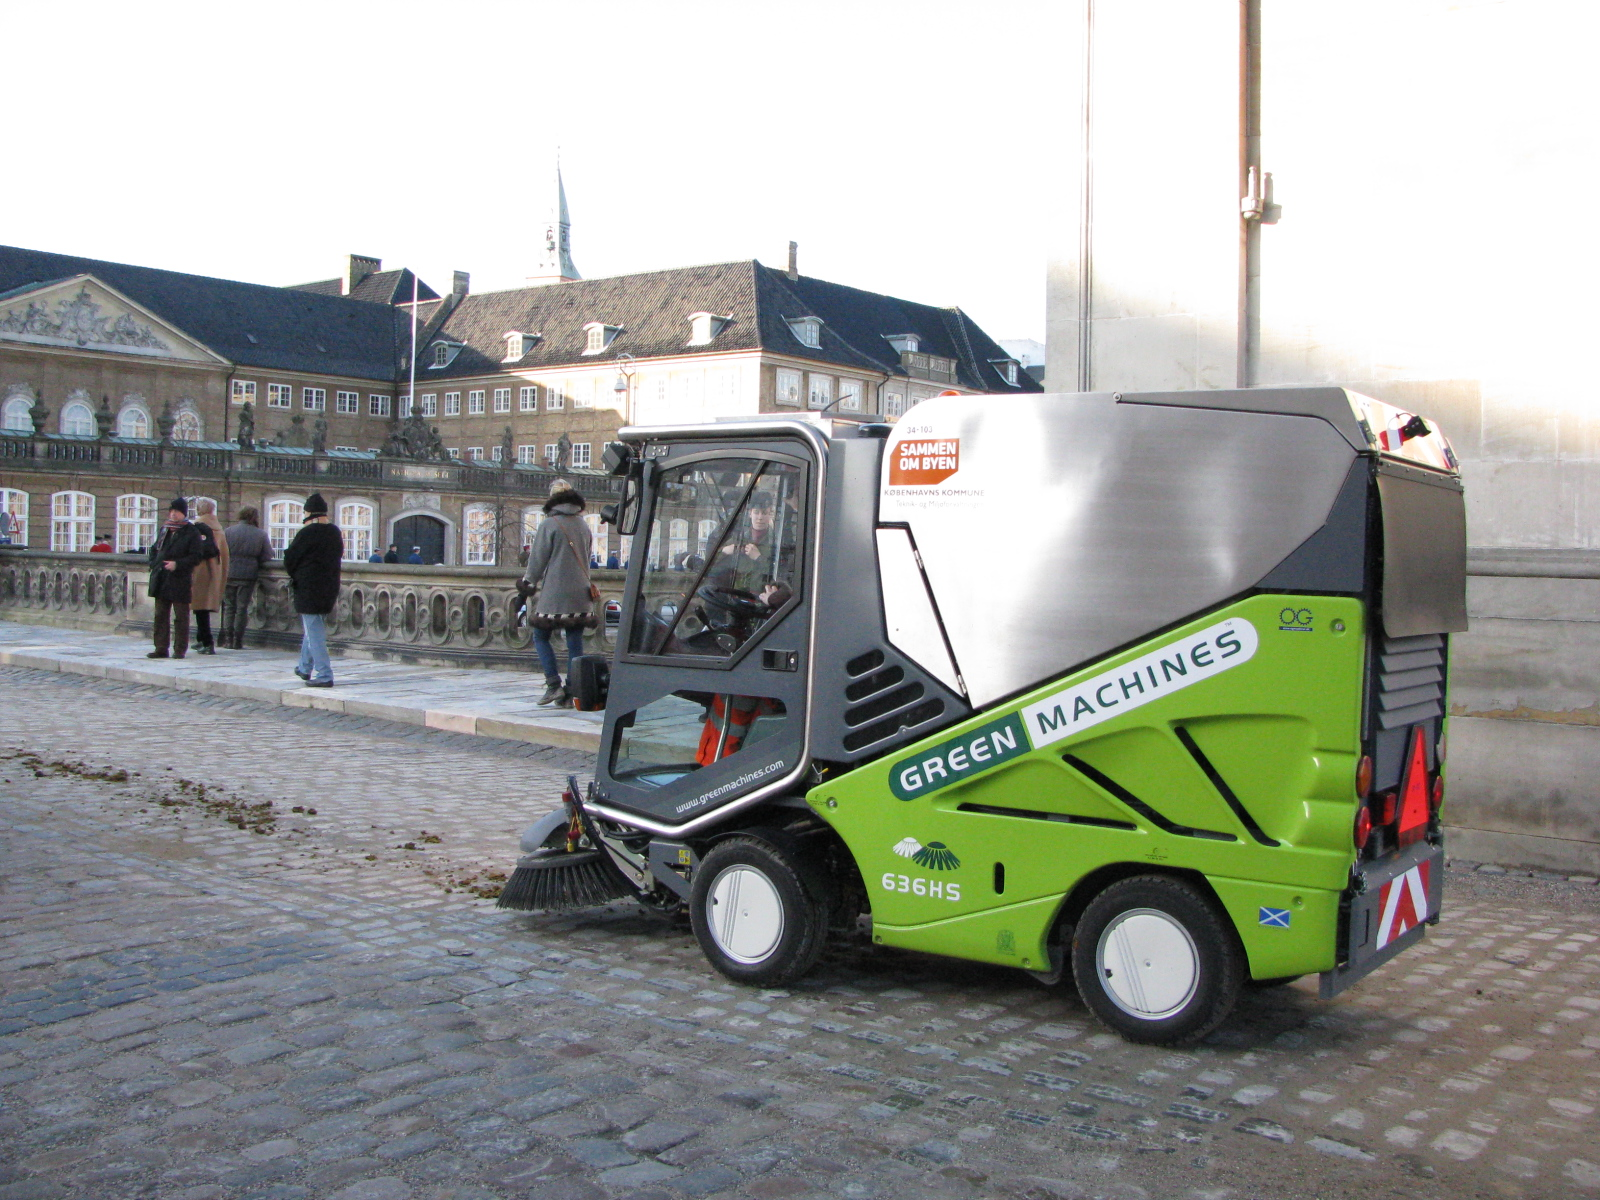 Did you guess what the little green van was for? Of course, a modern waste treatment van is used to pick up what the horses might have dropped!